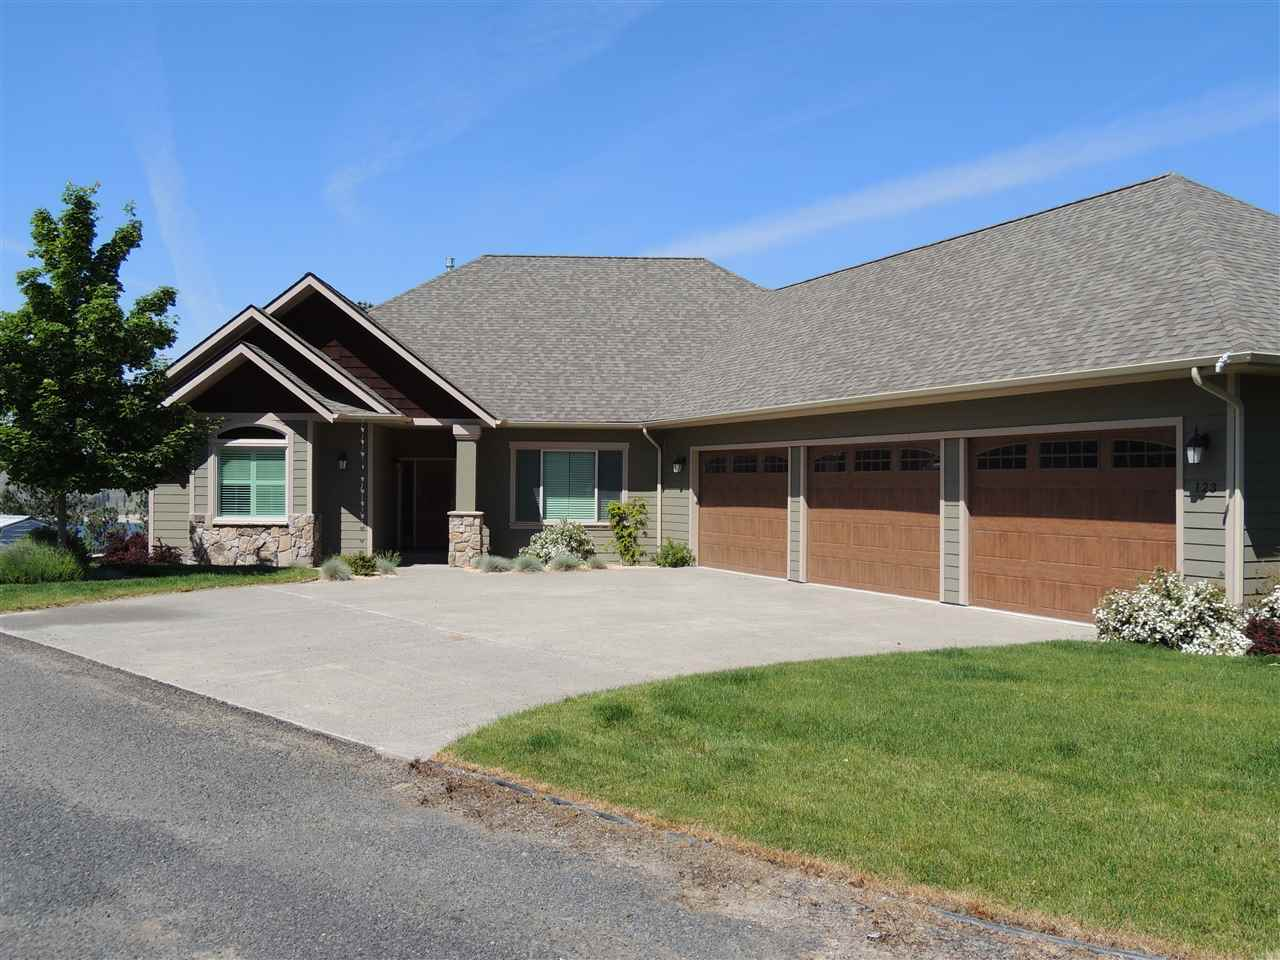 Single Family Home for Sale at 123 Blossom Ct. A. 123 Blossom Ct. A. Davenport, Washington 99122 United States